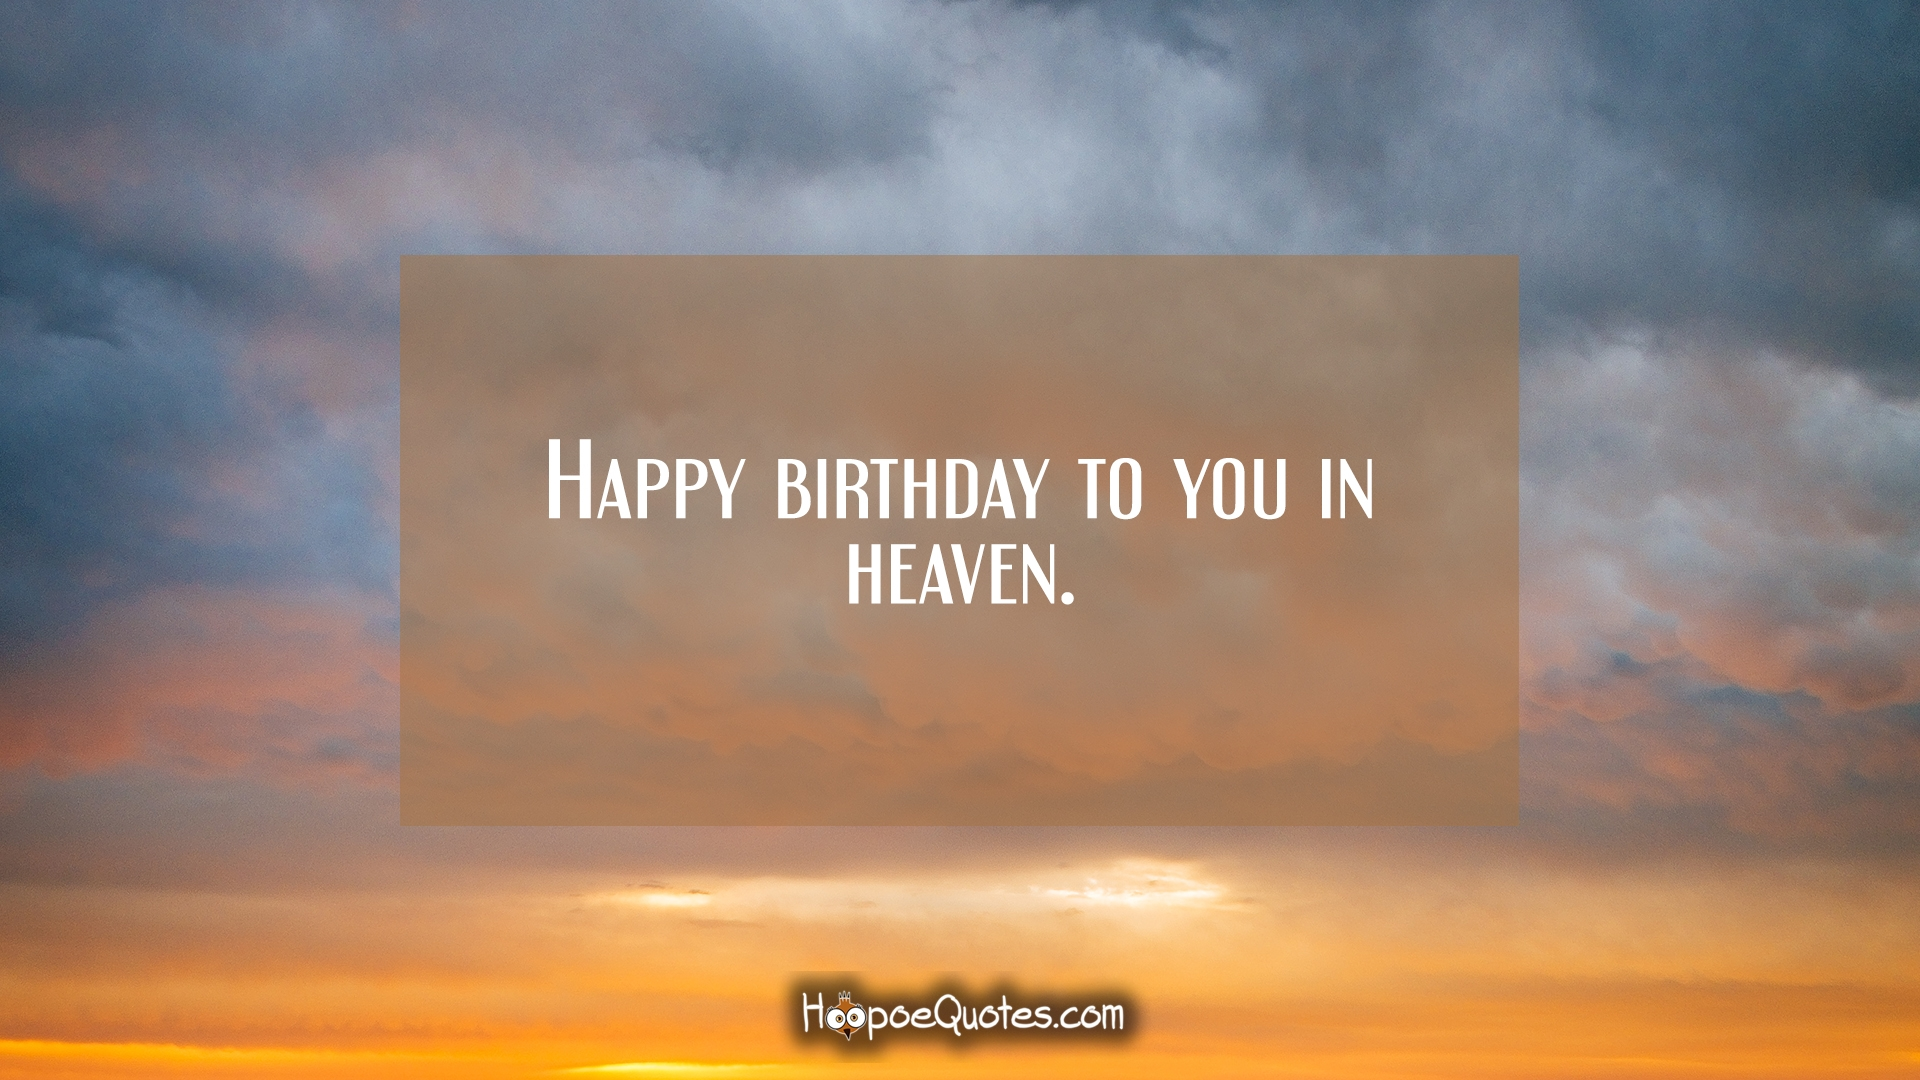 happy birthday to you in heaven ; 05a237112c8857c4865ac58b4284e04d